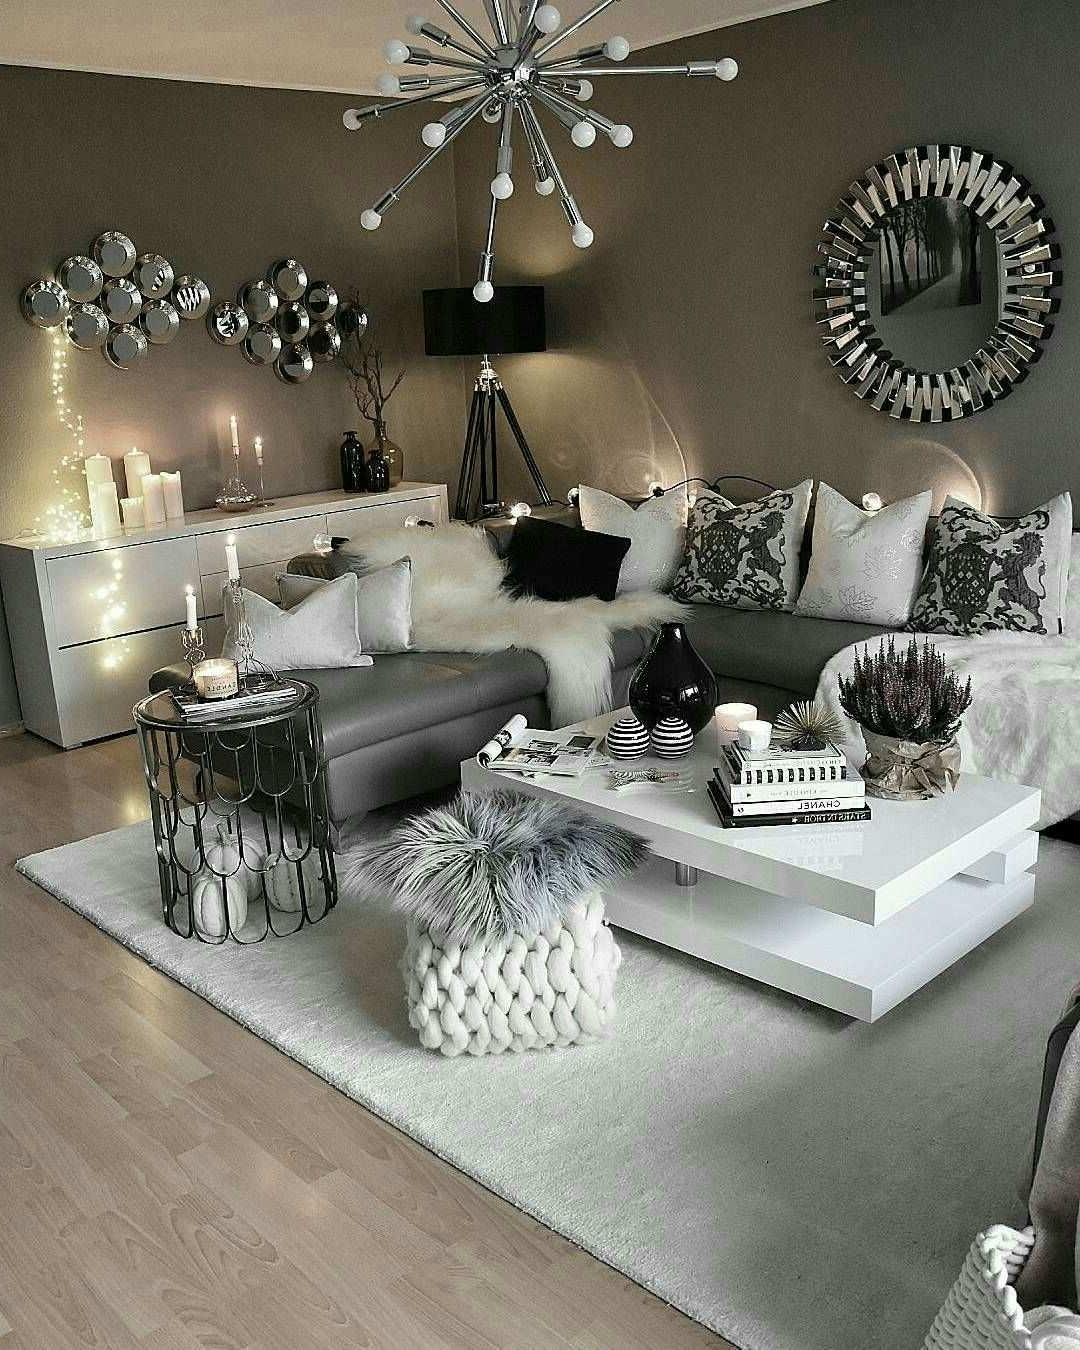 Only Furniture: Glamorous Monochromatic Living Room Ideas Monochrome Living Room Decorating